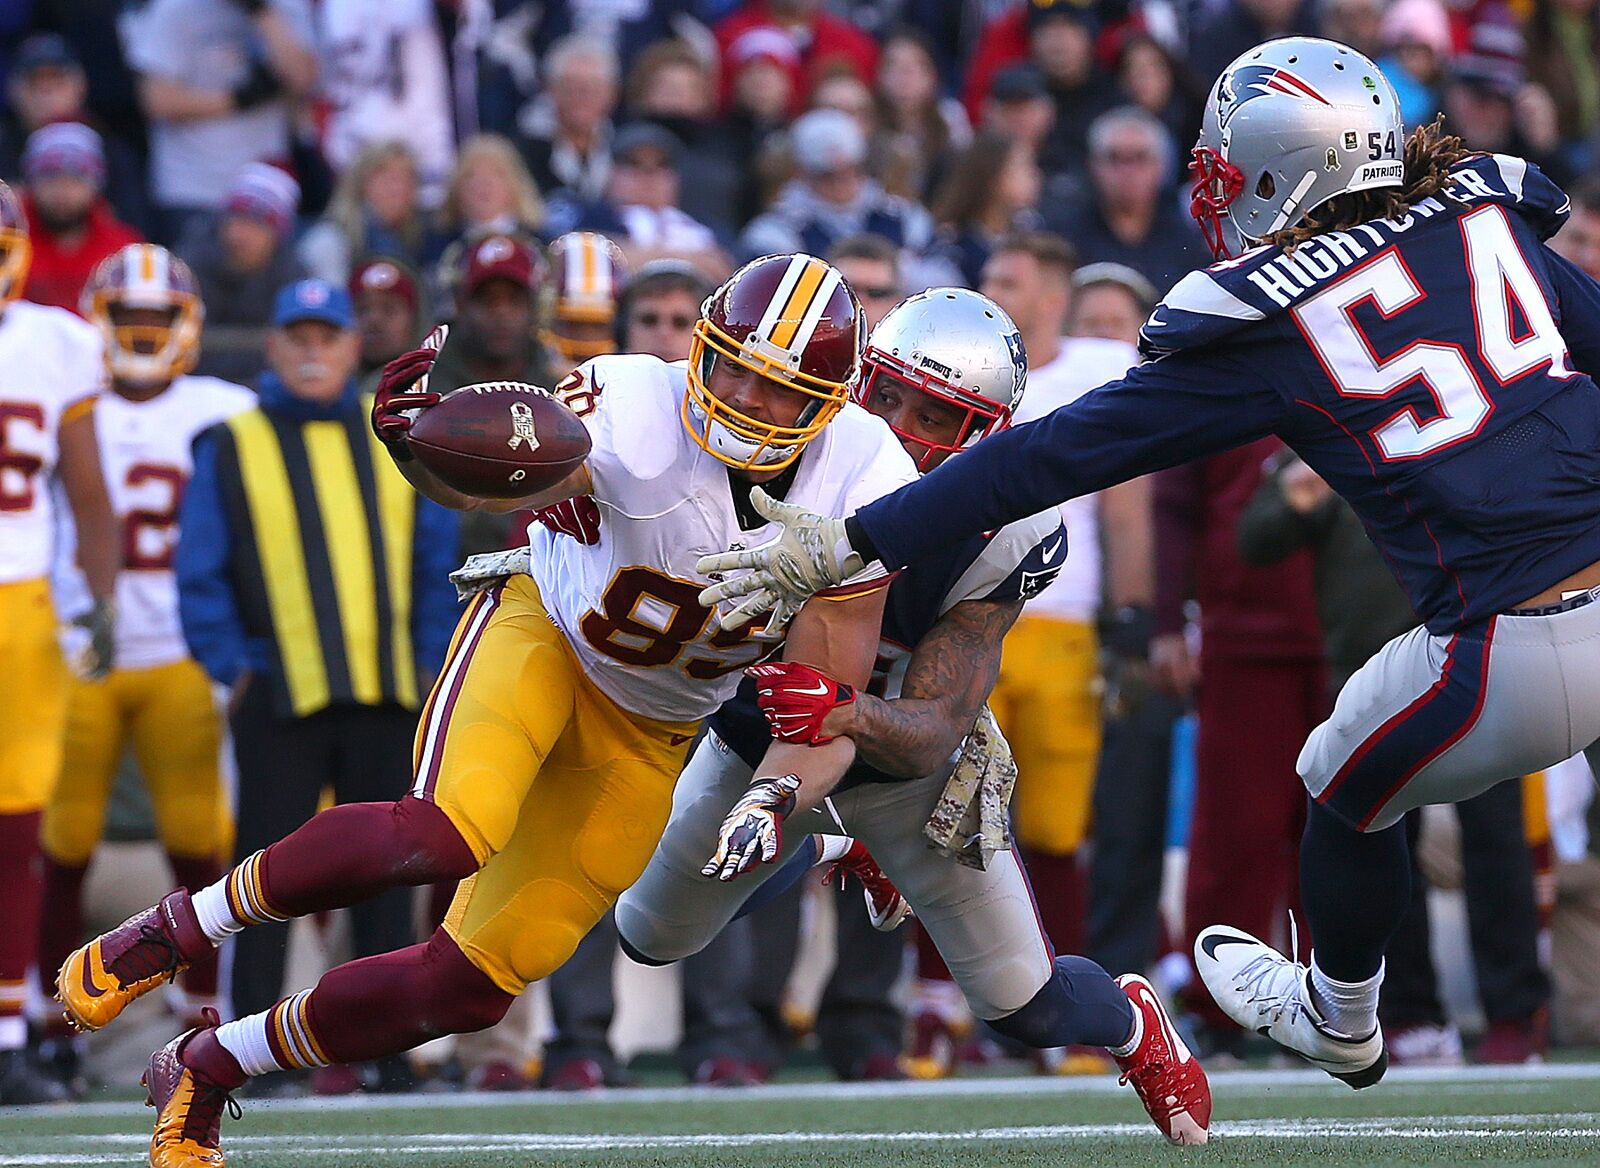 New England Patriots/Washington Redskins: What are notable injuries?